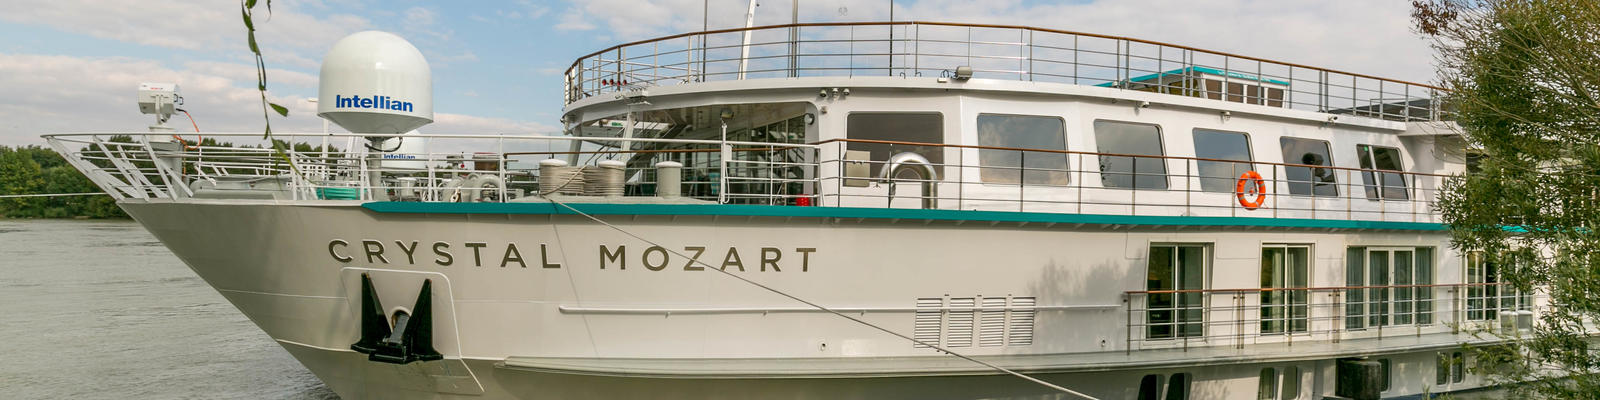 Crystal Mozart (Photo: Cruise Critic)